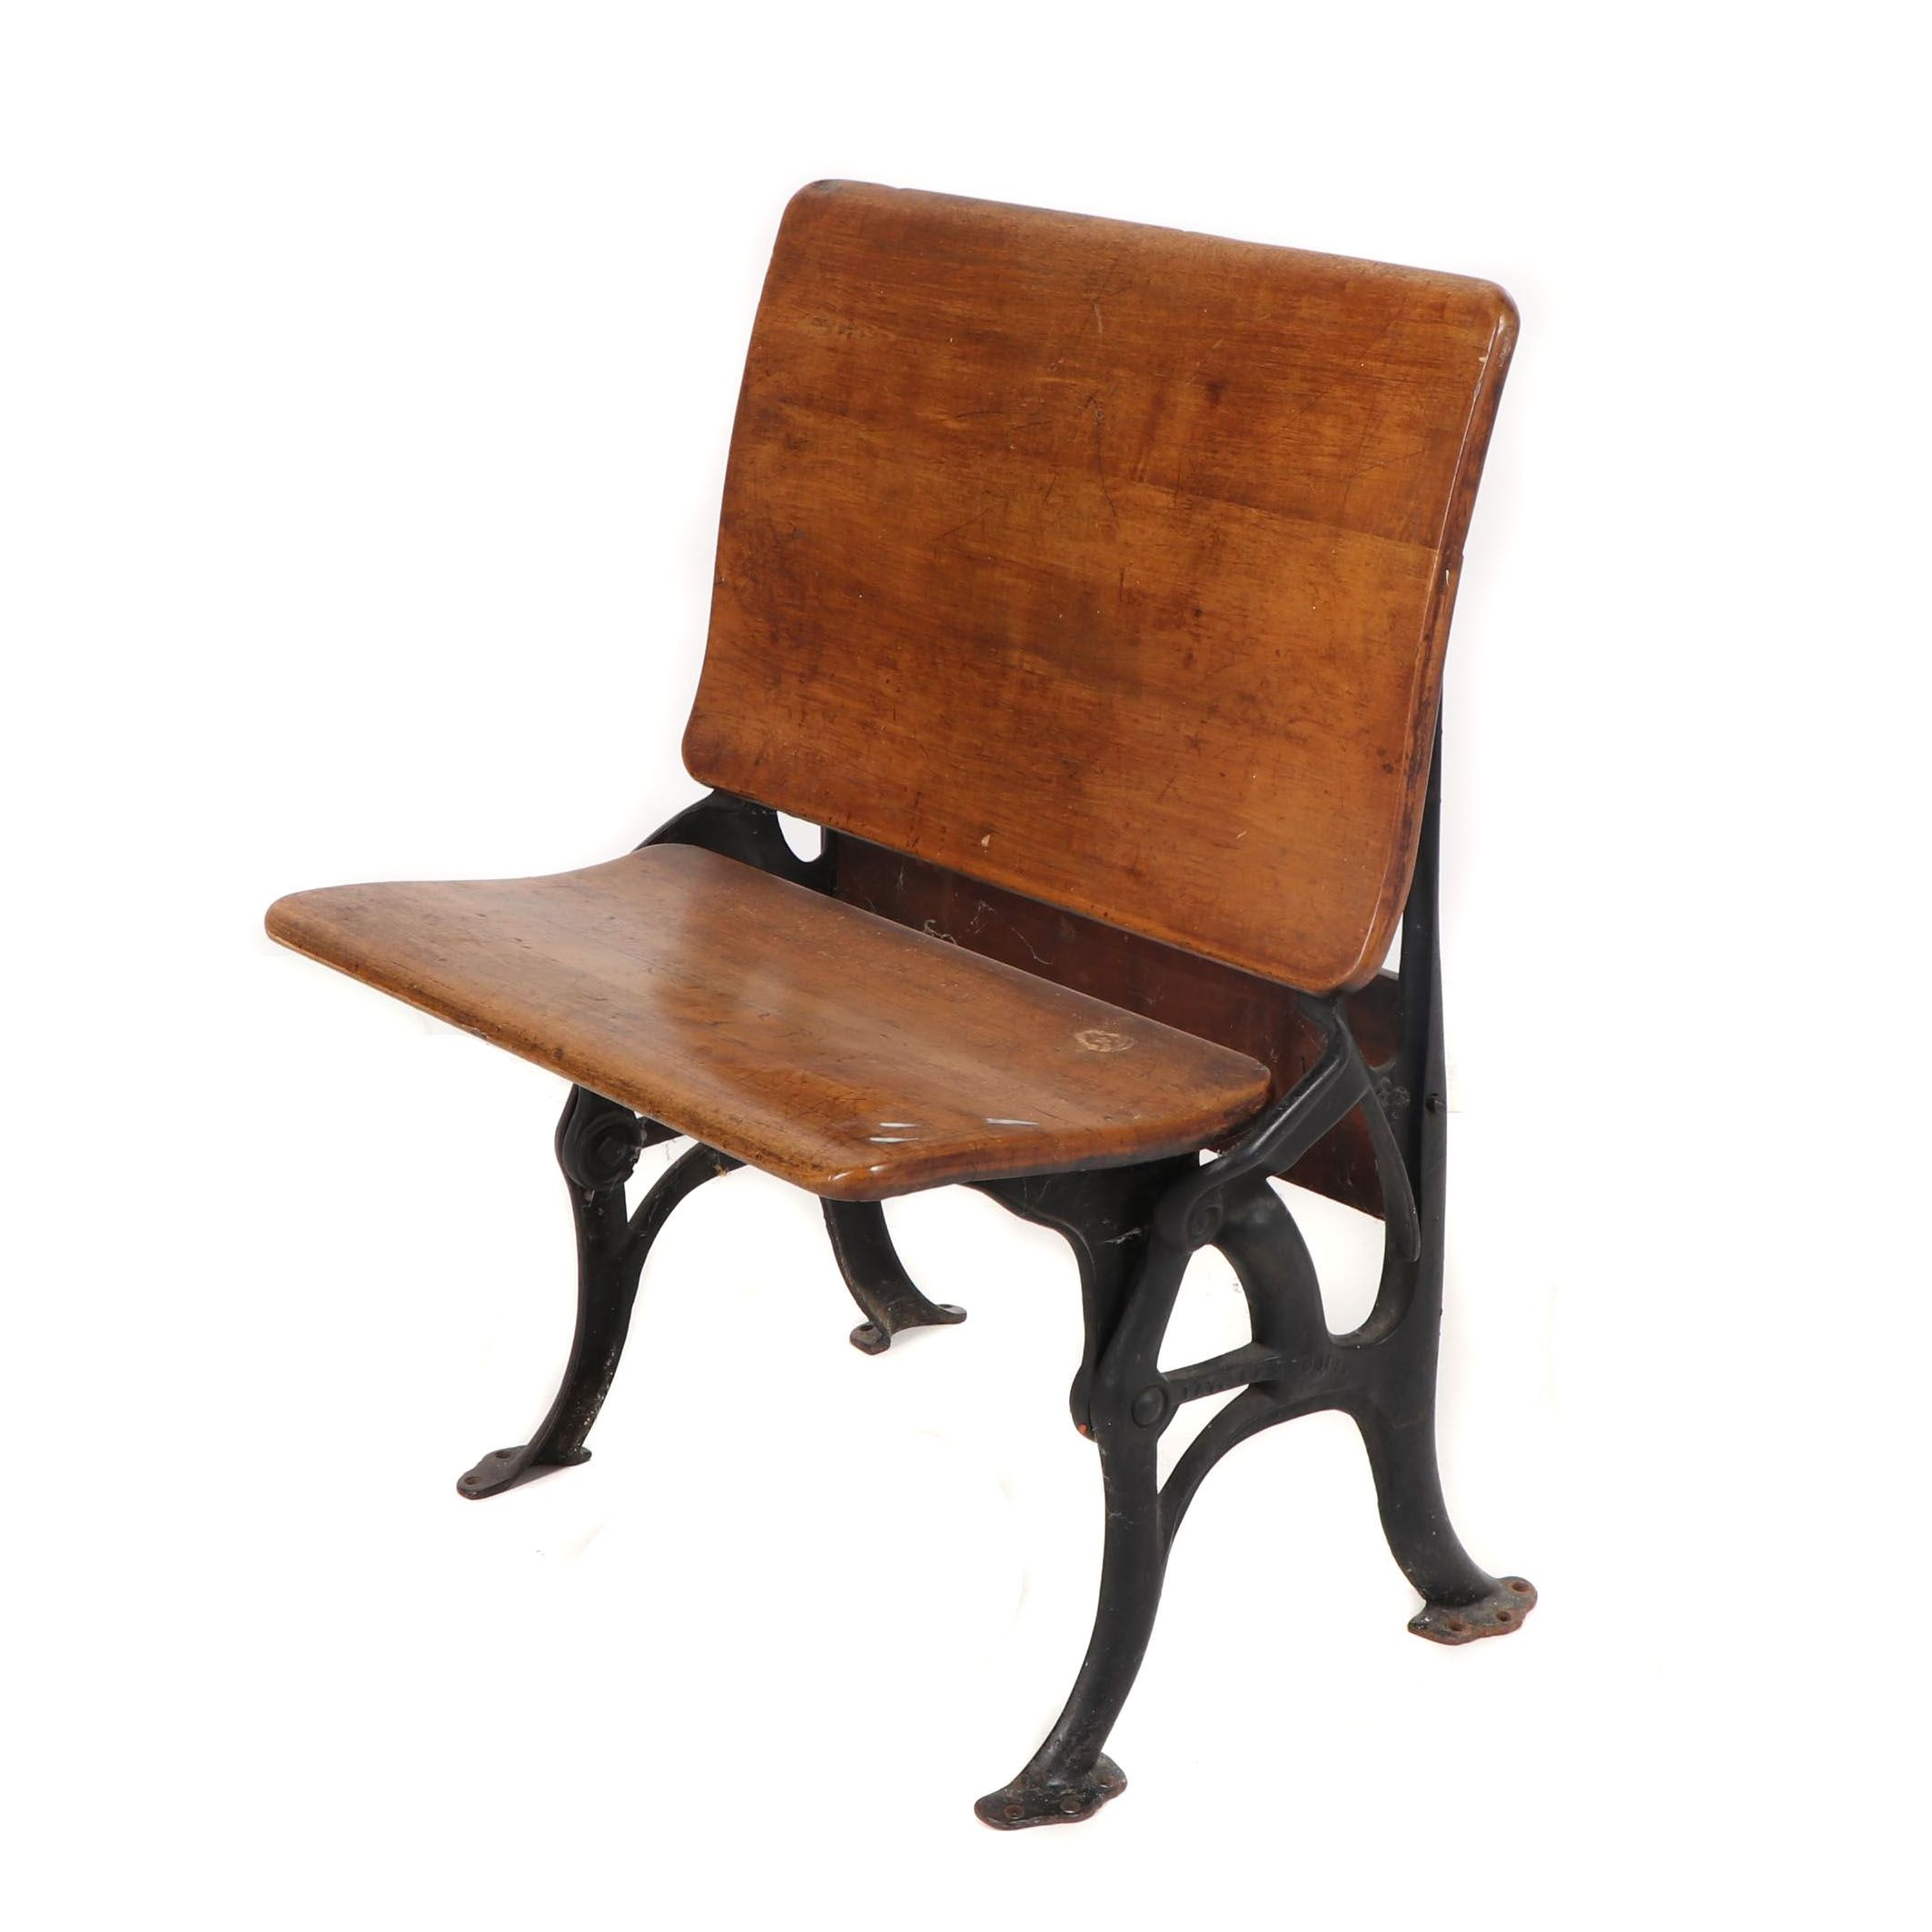 Cast Iron and Wood Folding School Bench, Early 20th Century